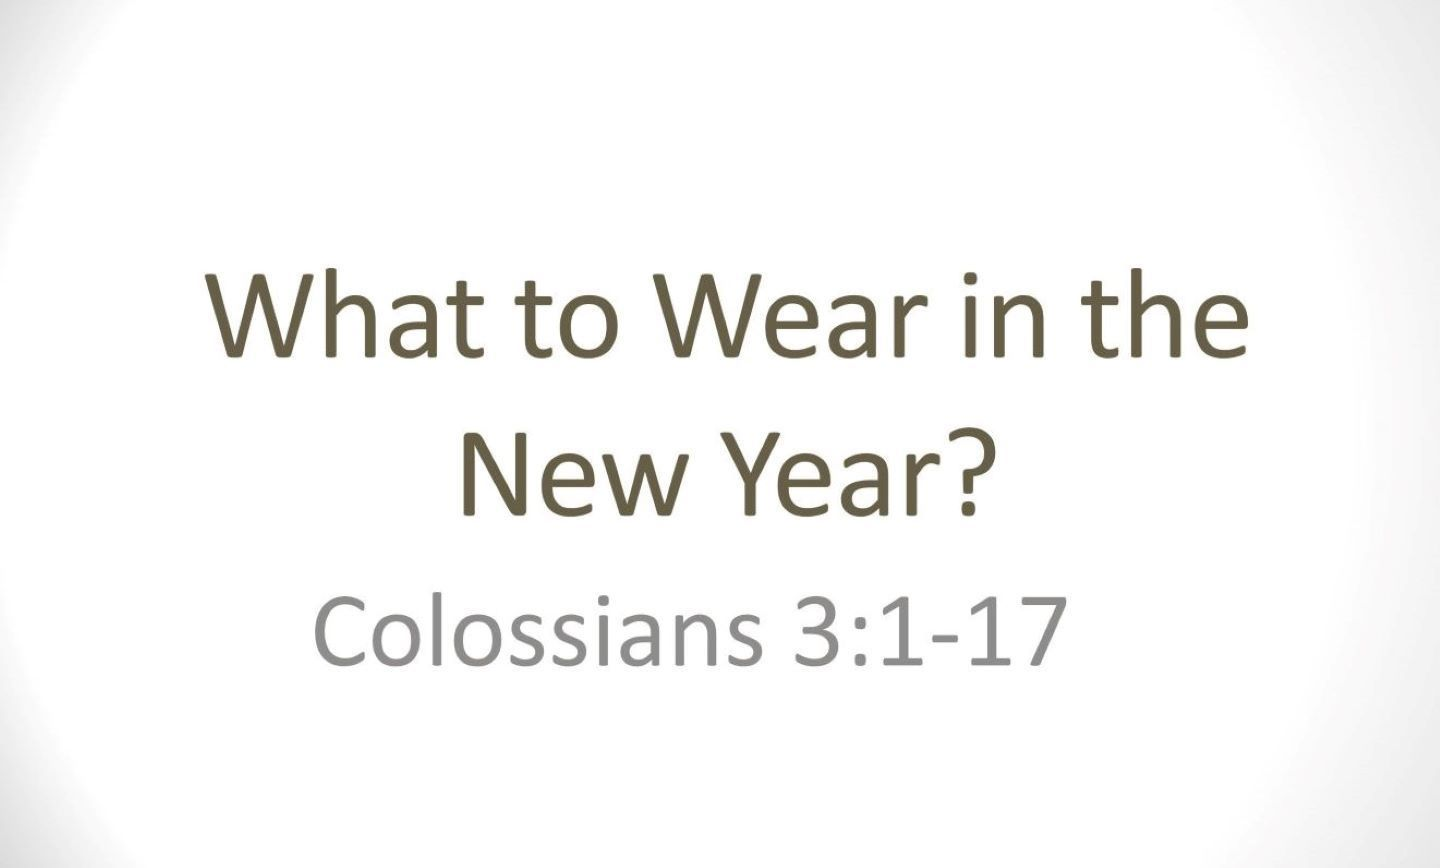 What to Wear in the New Year?